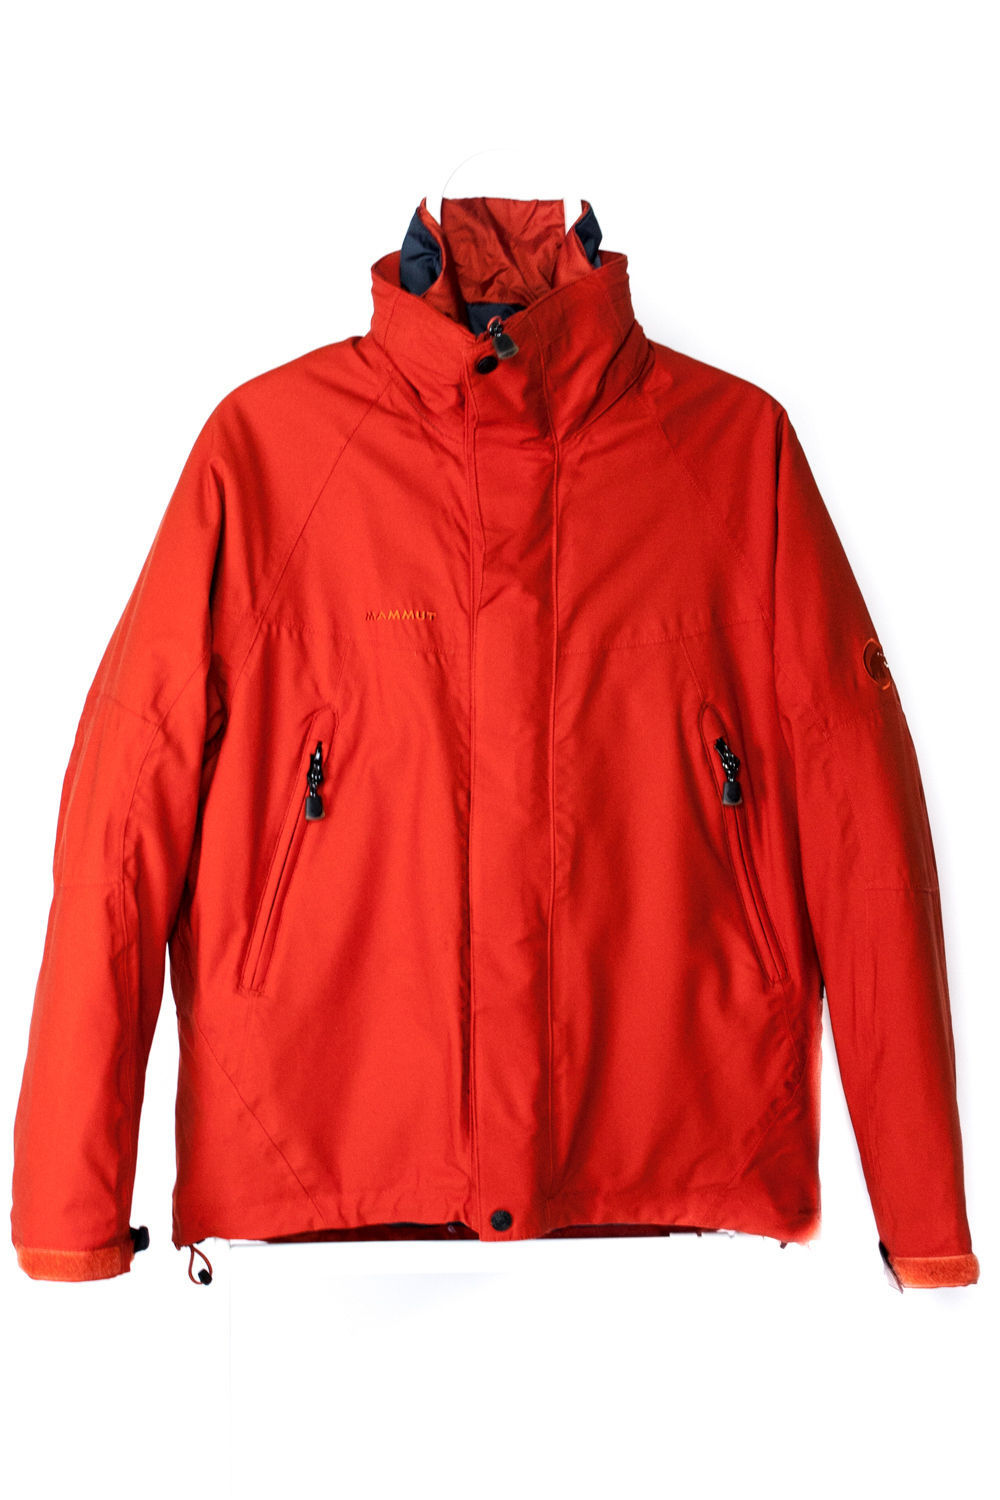 MAMMUT Zip In Dry Tech® Weatherproof Outdoor 2 in 1 Jacket SIZE S - secondfirst